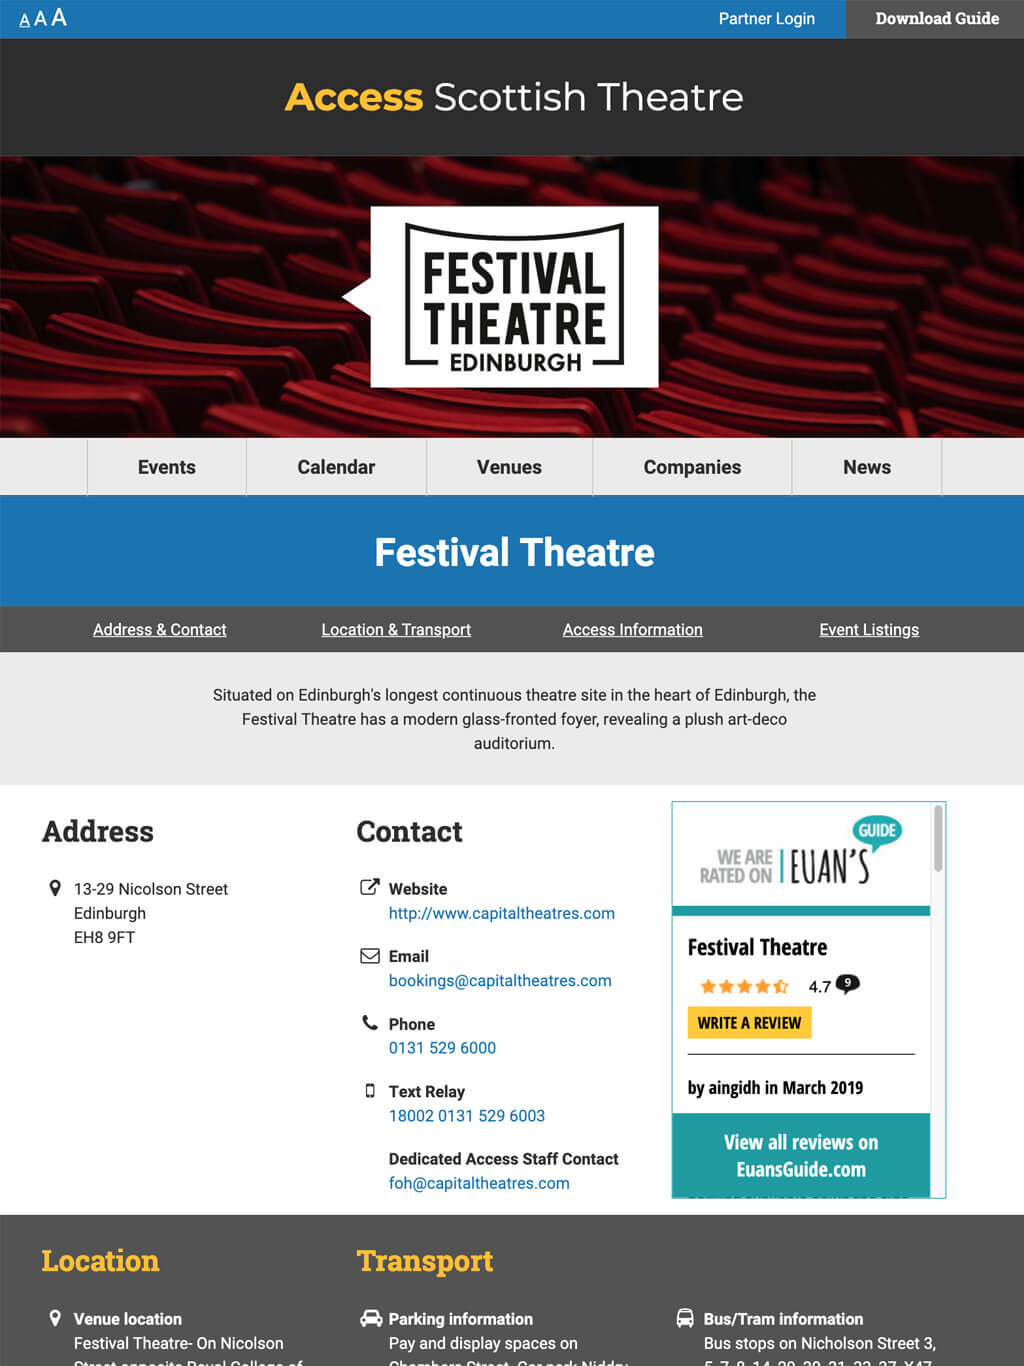 Image showing a venue details page on a tablet device for Access Scottish Theatre website - Accessible web design Scotland